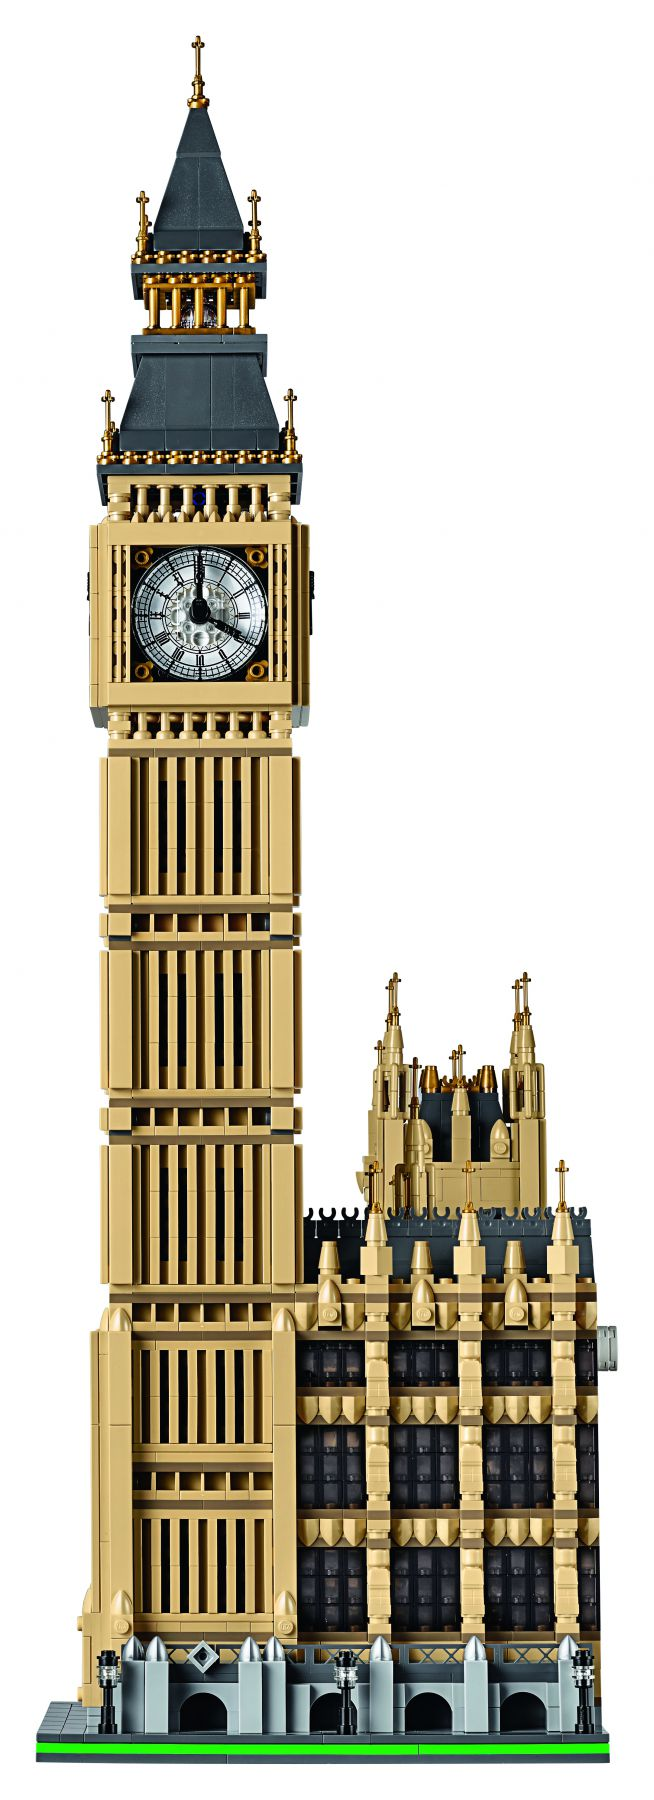 LEGO Advanced Models 10253 Big Ben LEGO_Creator_Big_Ben_10253-17.jpg